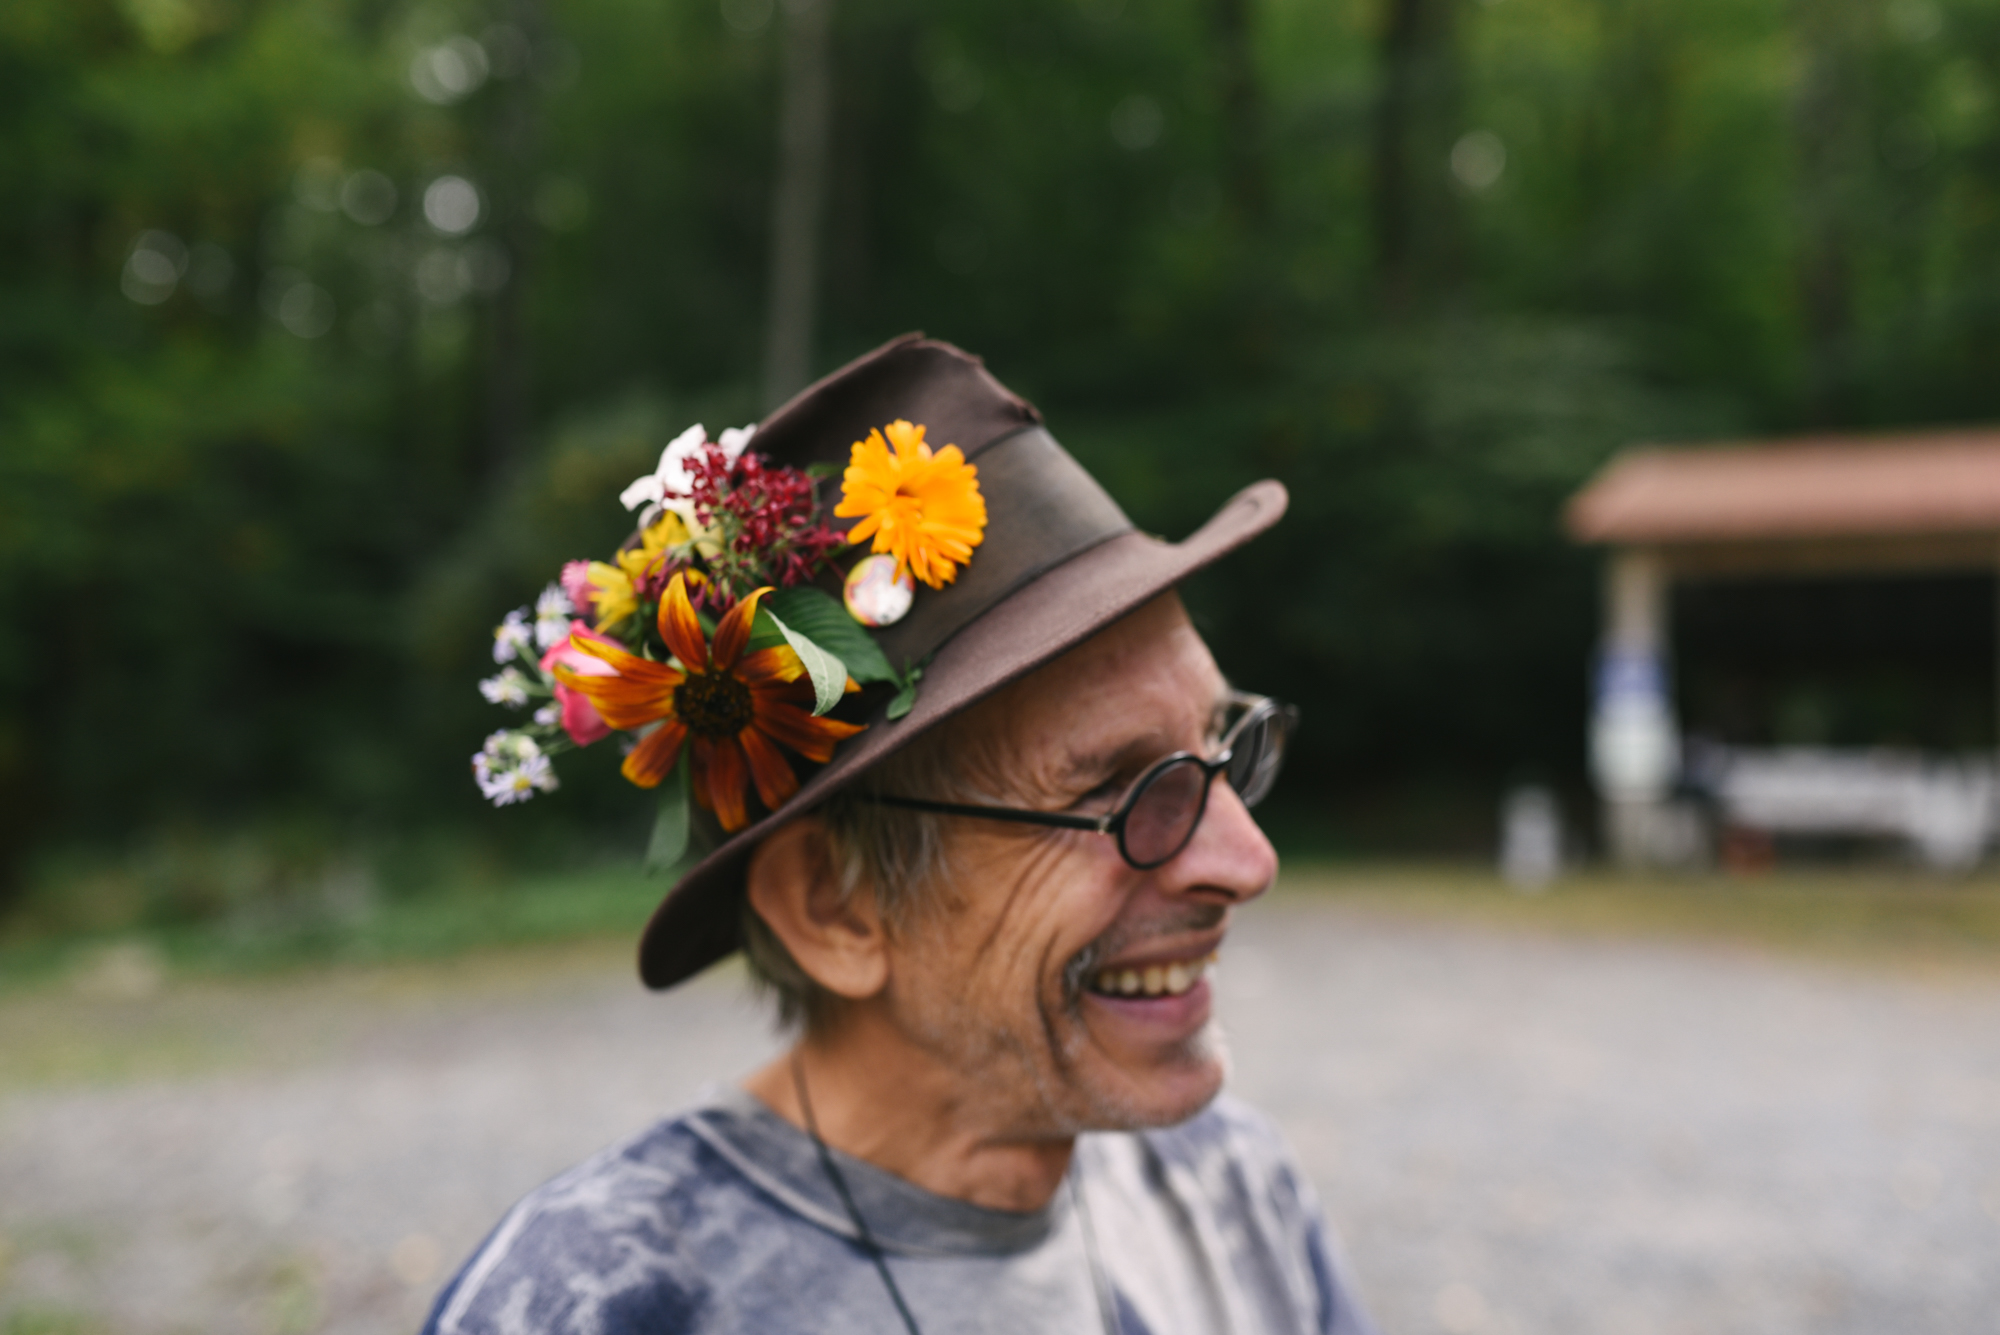 Mountain Wedding, Outdoors, Rustic, West Virginia, Maryland Wedding Photographer, DIY, Casual, Wedding Guest with flowers in his hat, guest smiling and laughing